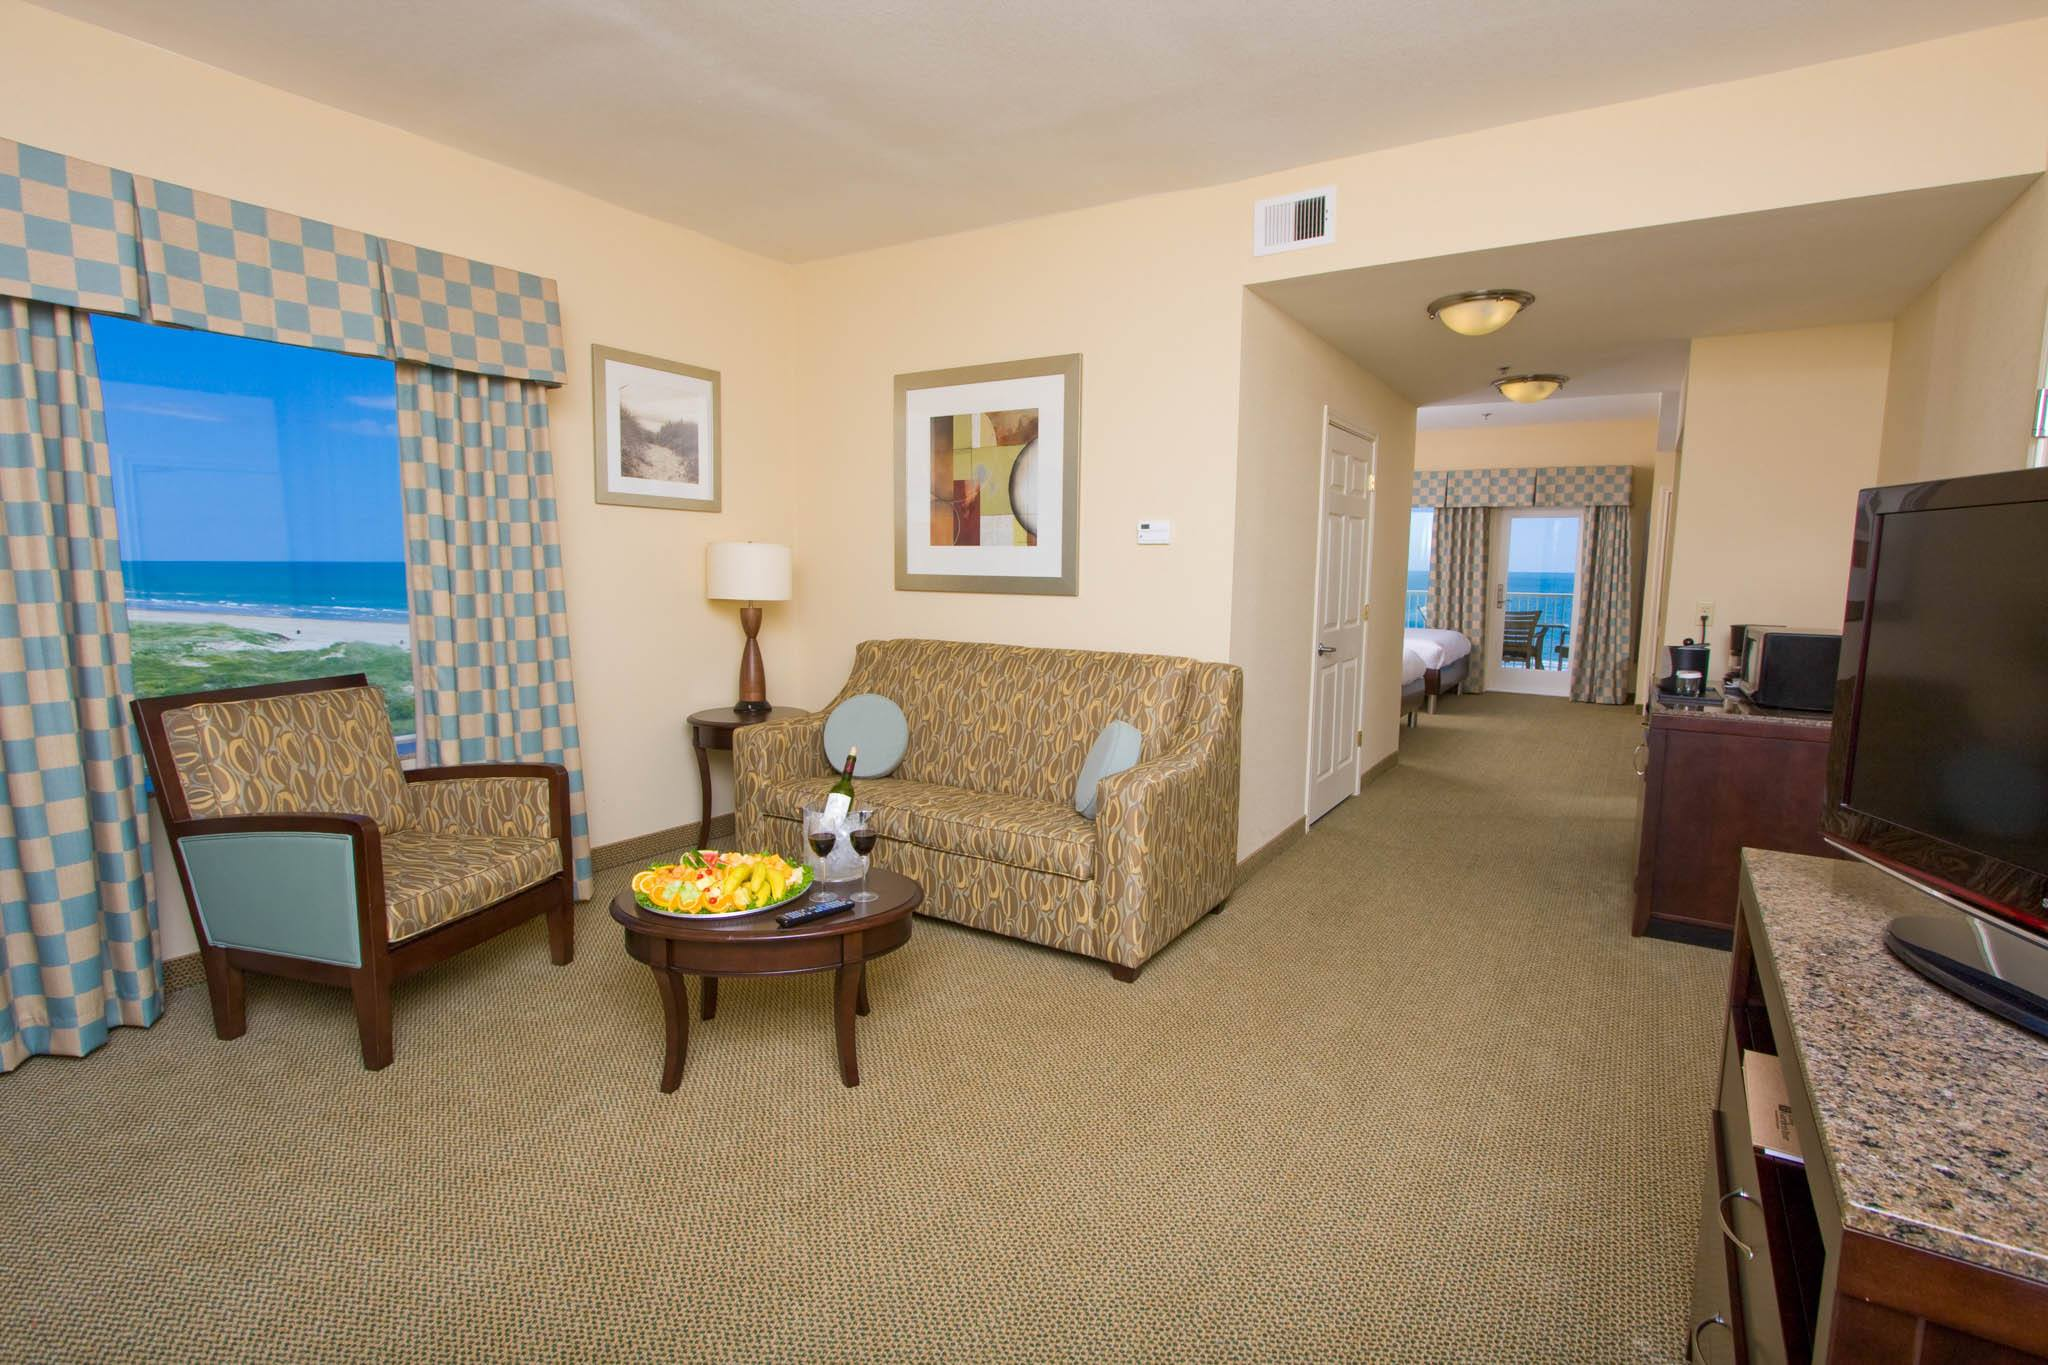 south padre island chat rooms Aquarius condominiums: room 107 - see 68 traveler reviews, 66 candid photos popular south padre island categories condo hotels in south padre island.